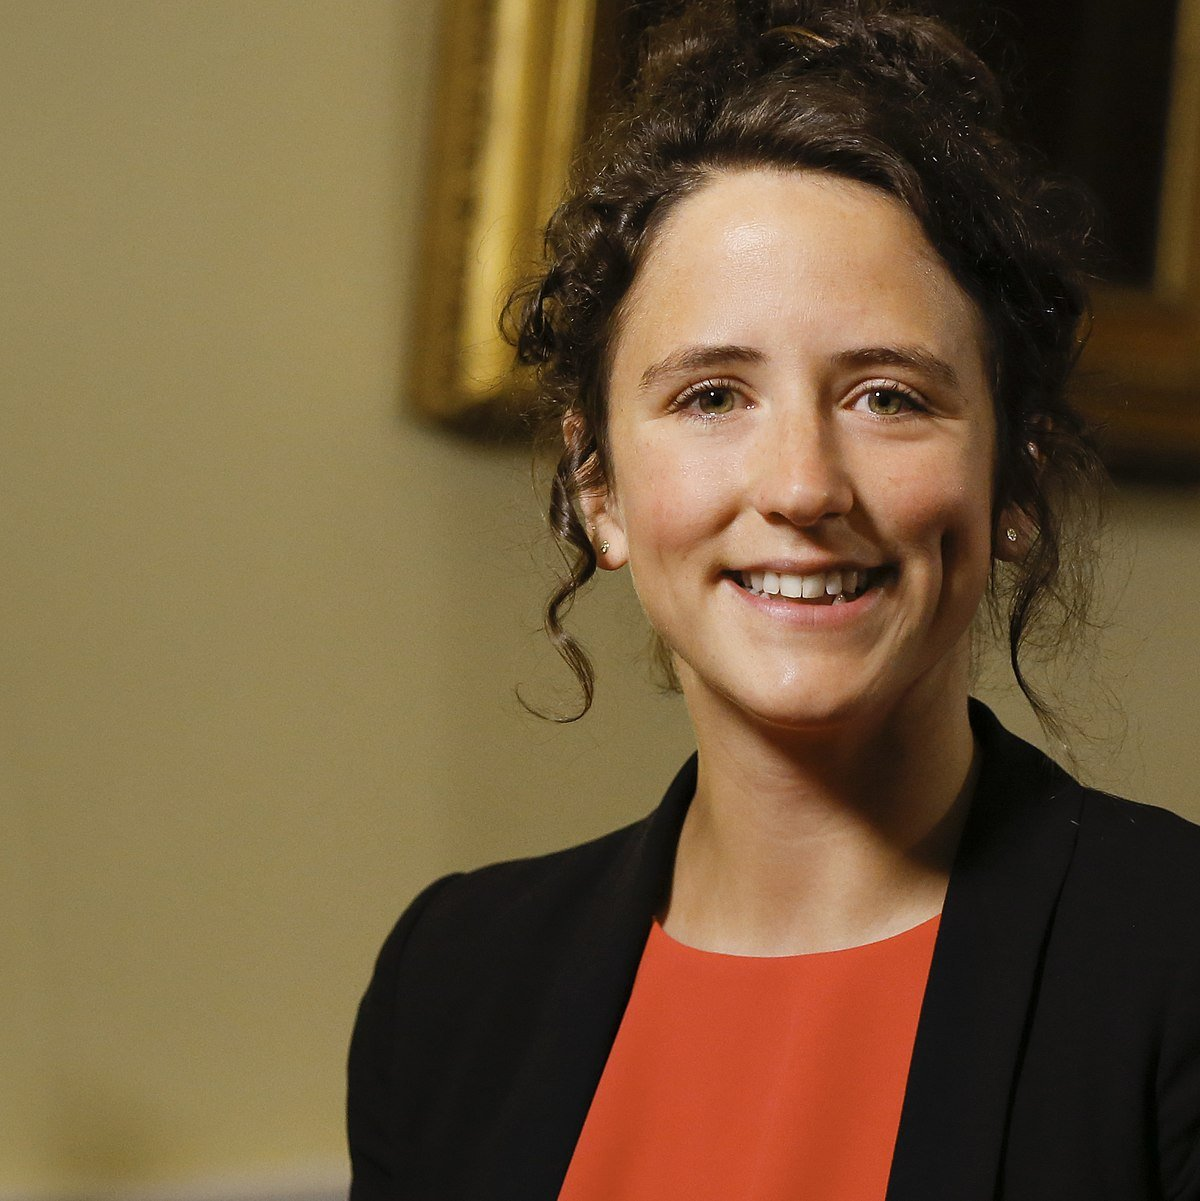 Mairi Gougeon of has been appointed the new Cabinet Secretary for Rural Affairs and Islands, taking over from Fergus Ewing